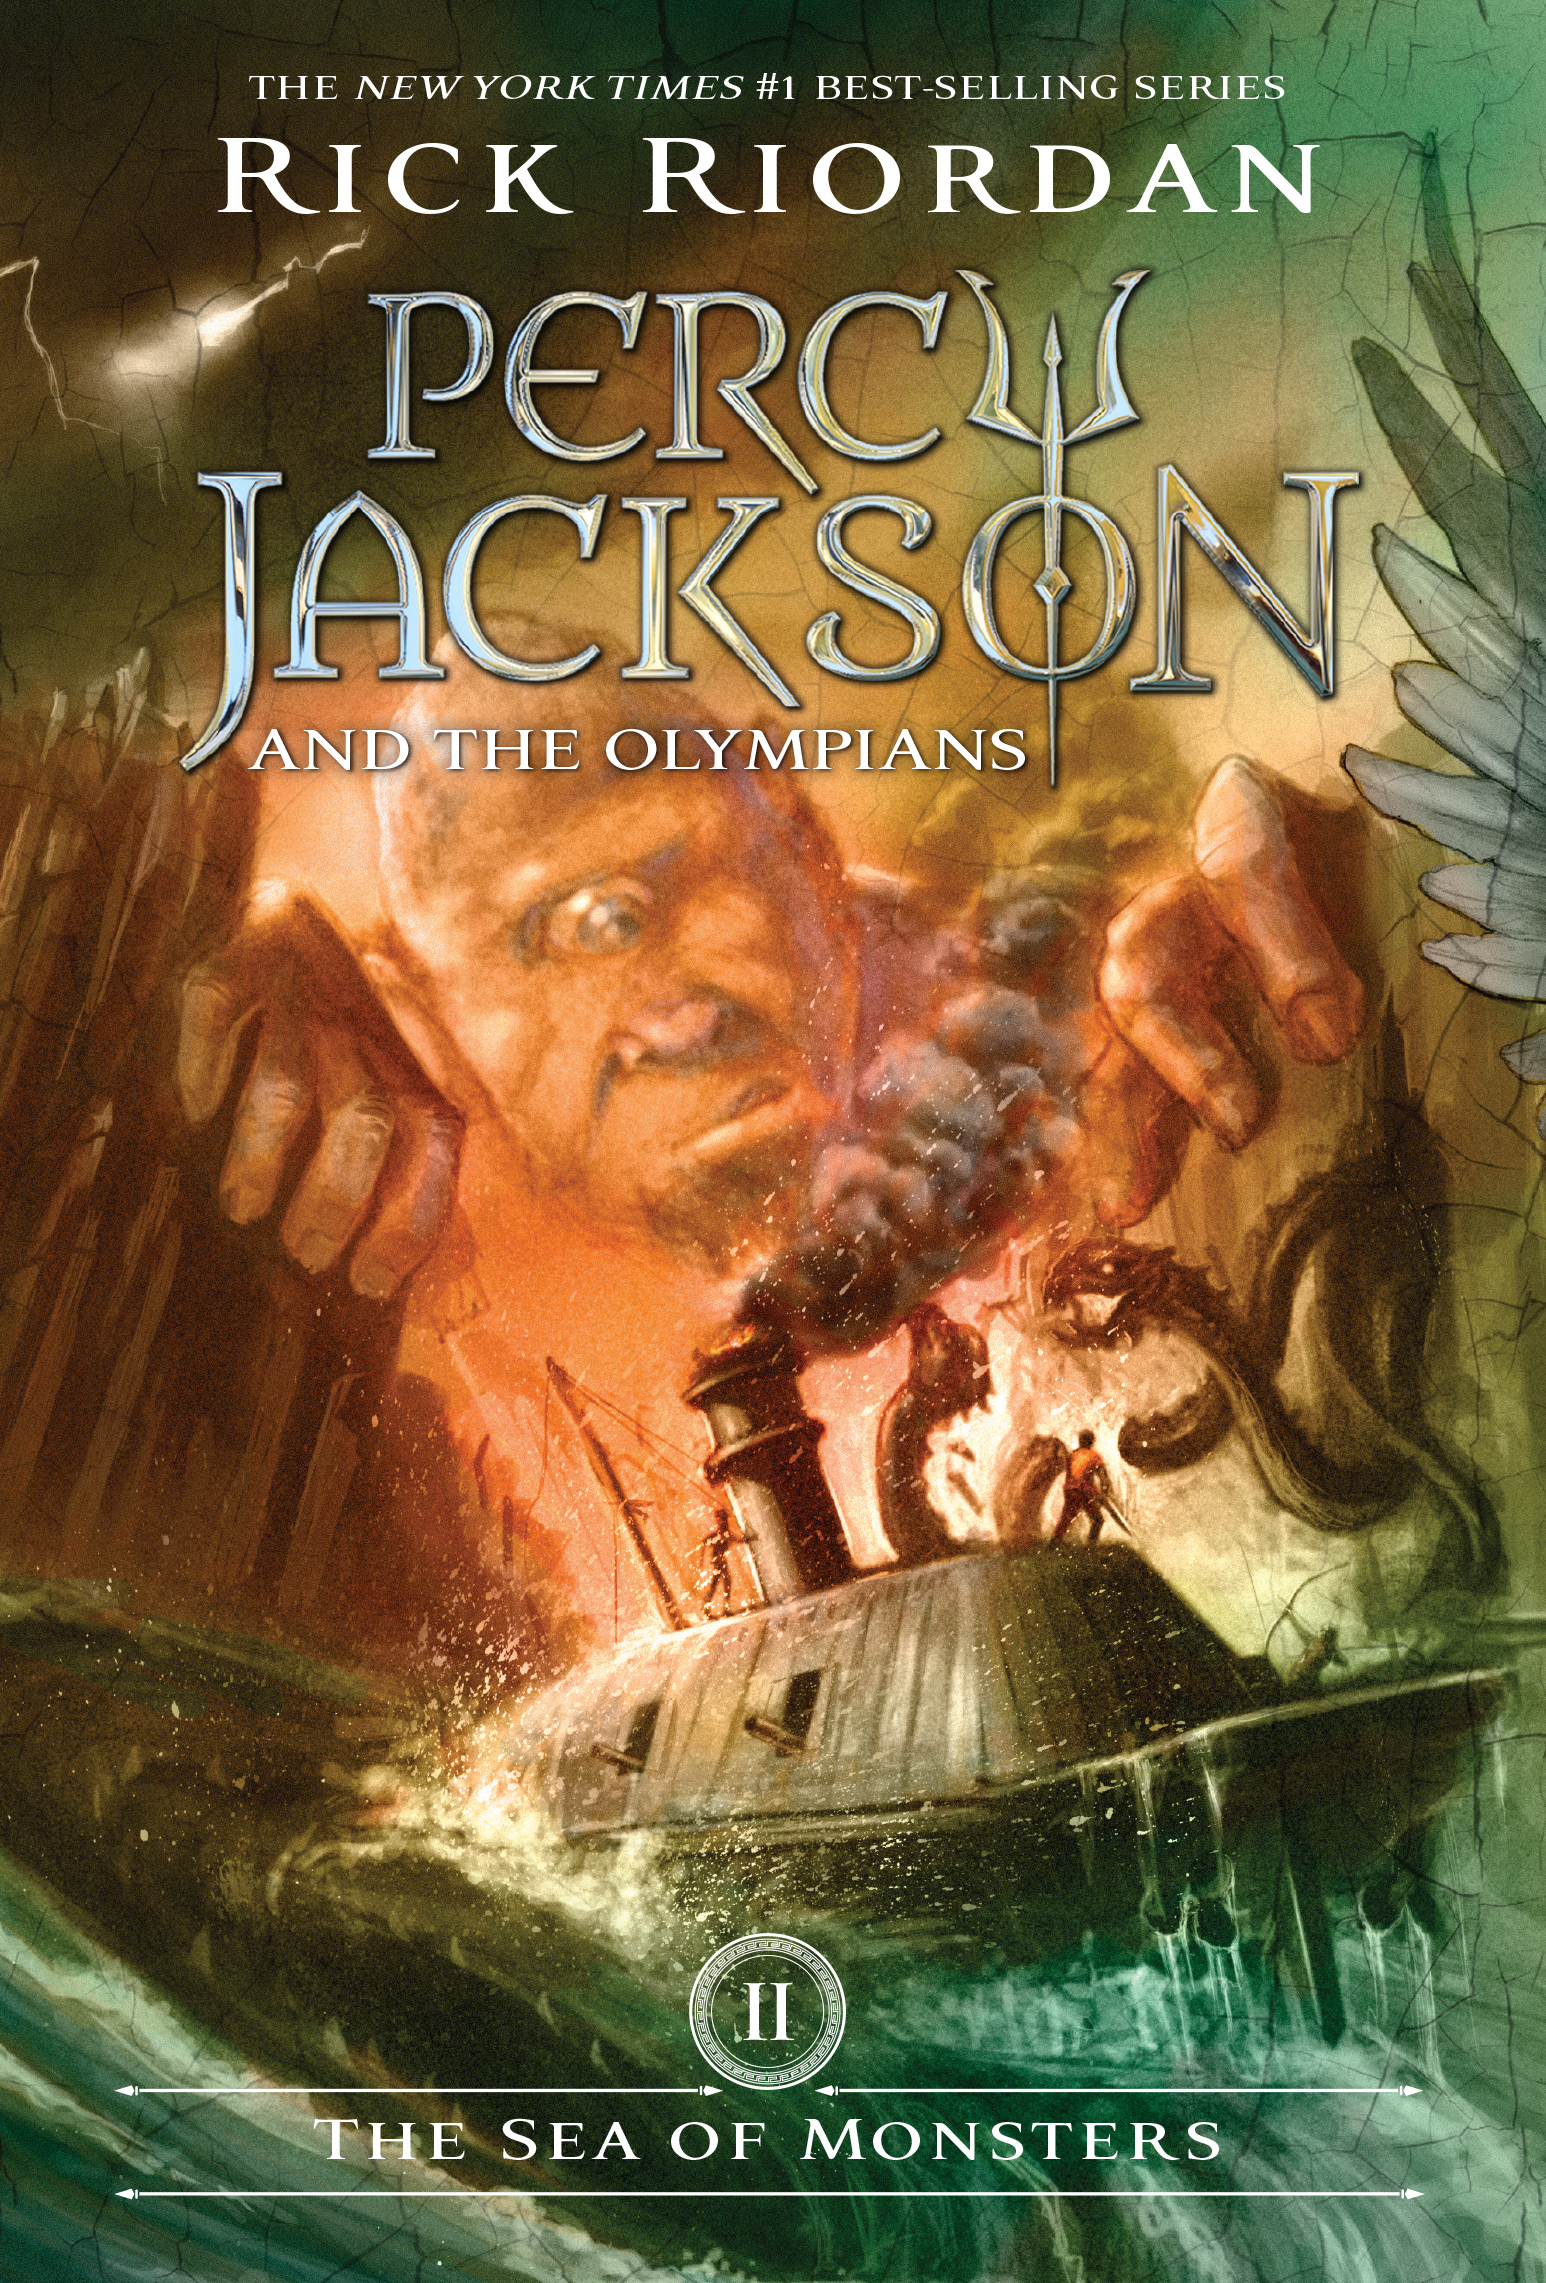 Percy Jackson and the Olympians 4a7c100ff8c2d